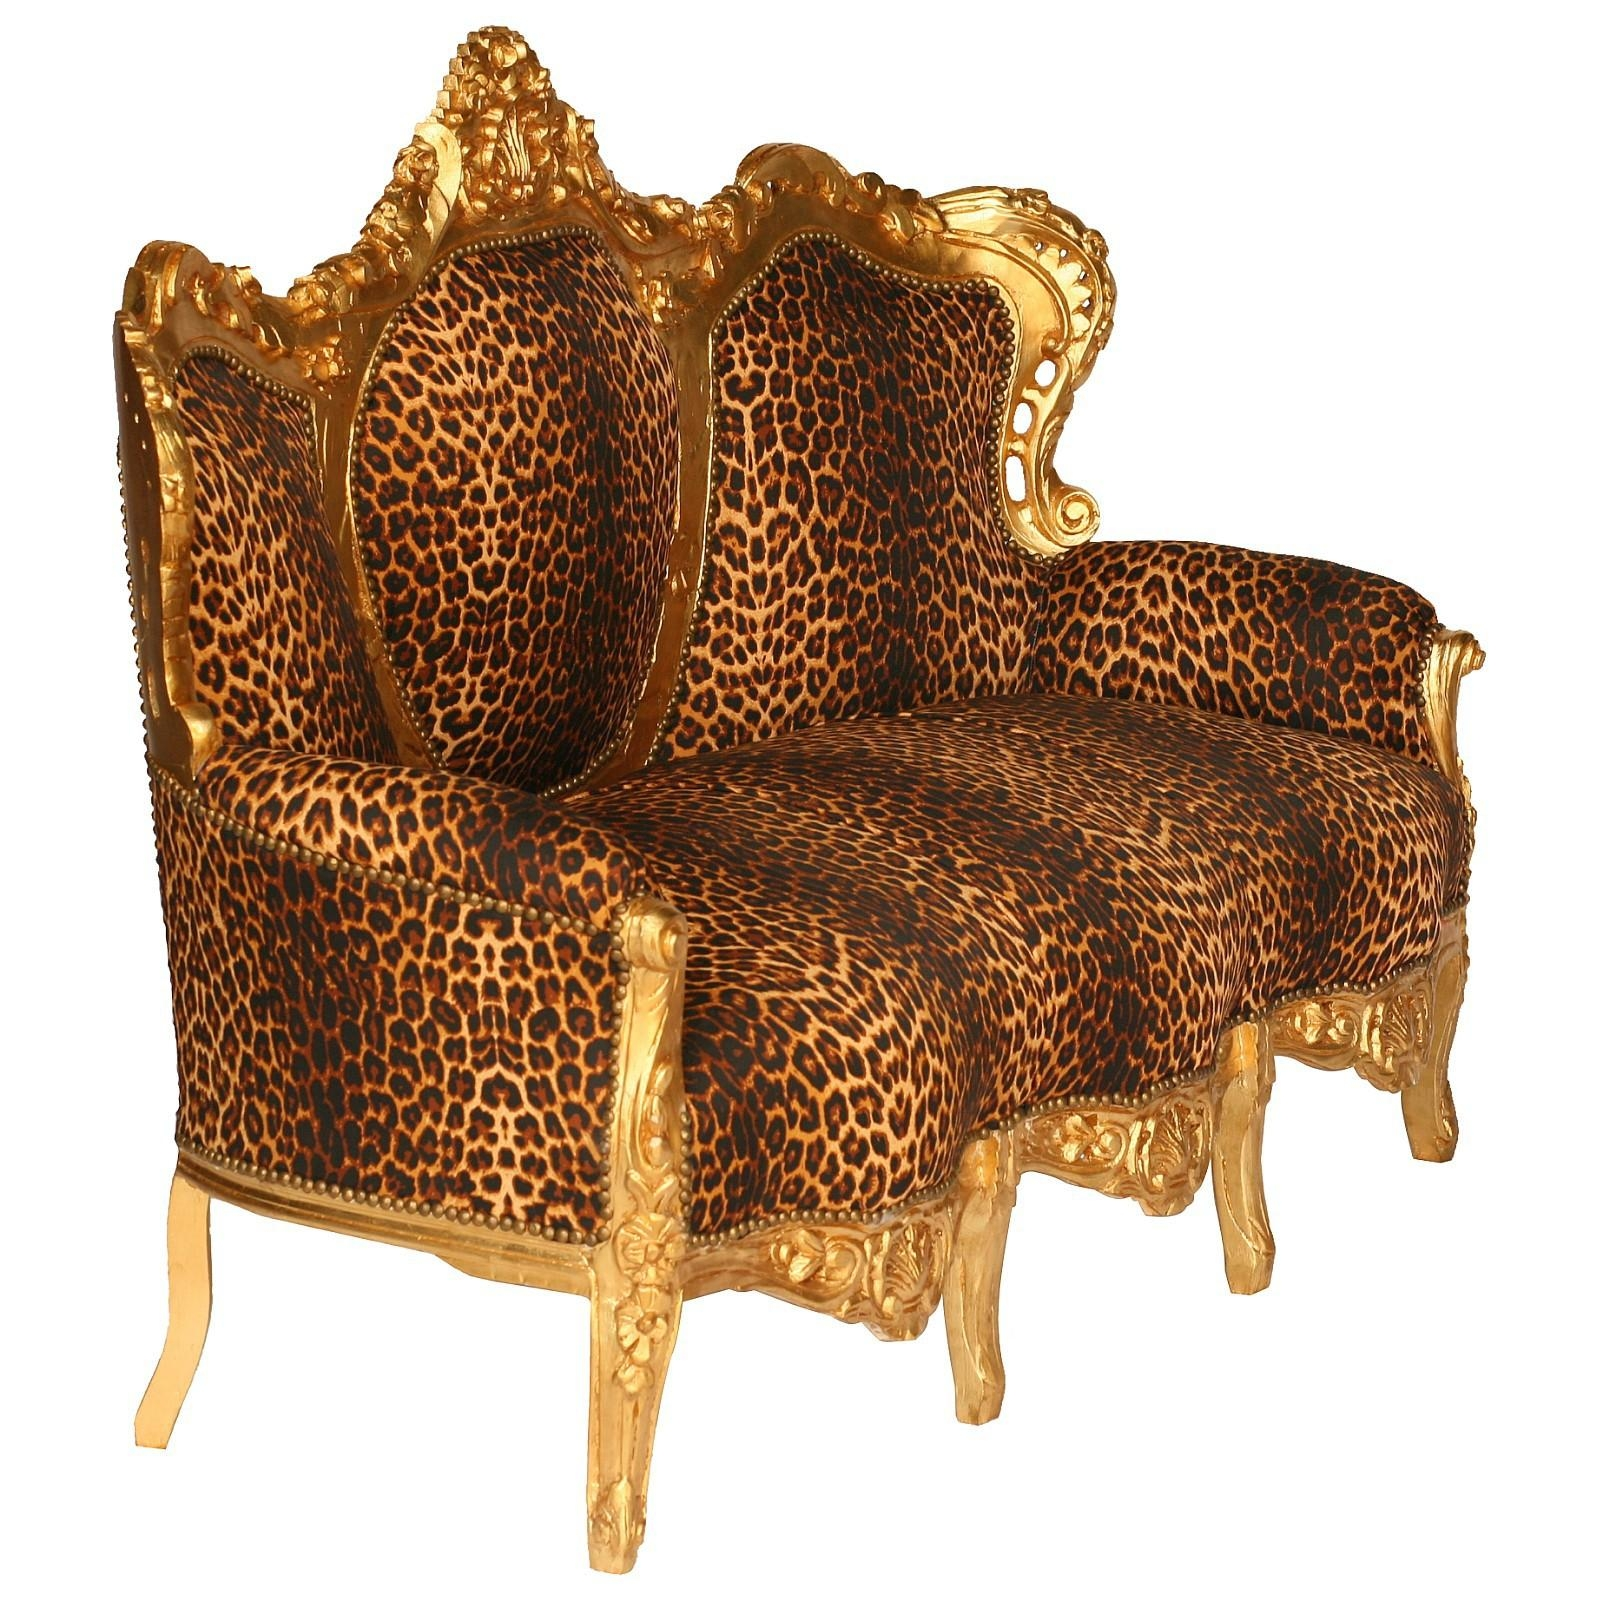 Sofas Center : Animal Print Cushions On Black Armchairs And Sofa With Regard To Animal Print Sofas (View 13 of 20)